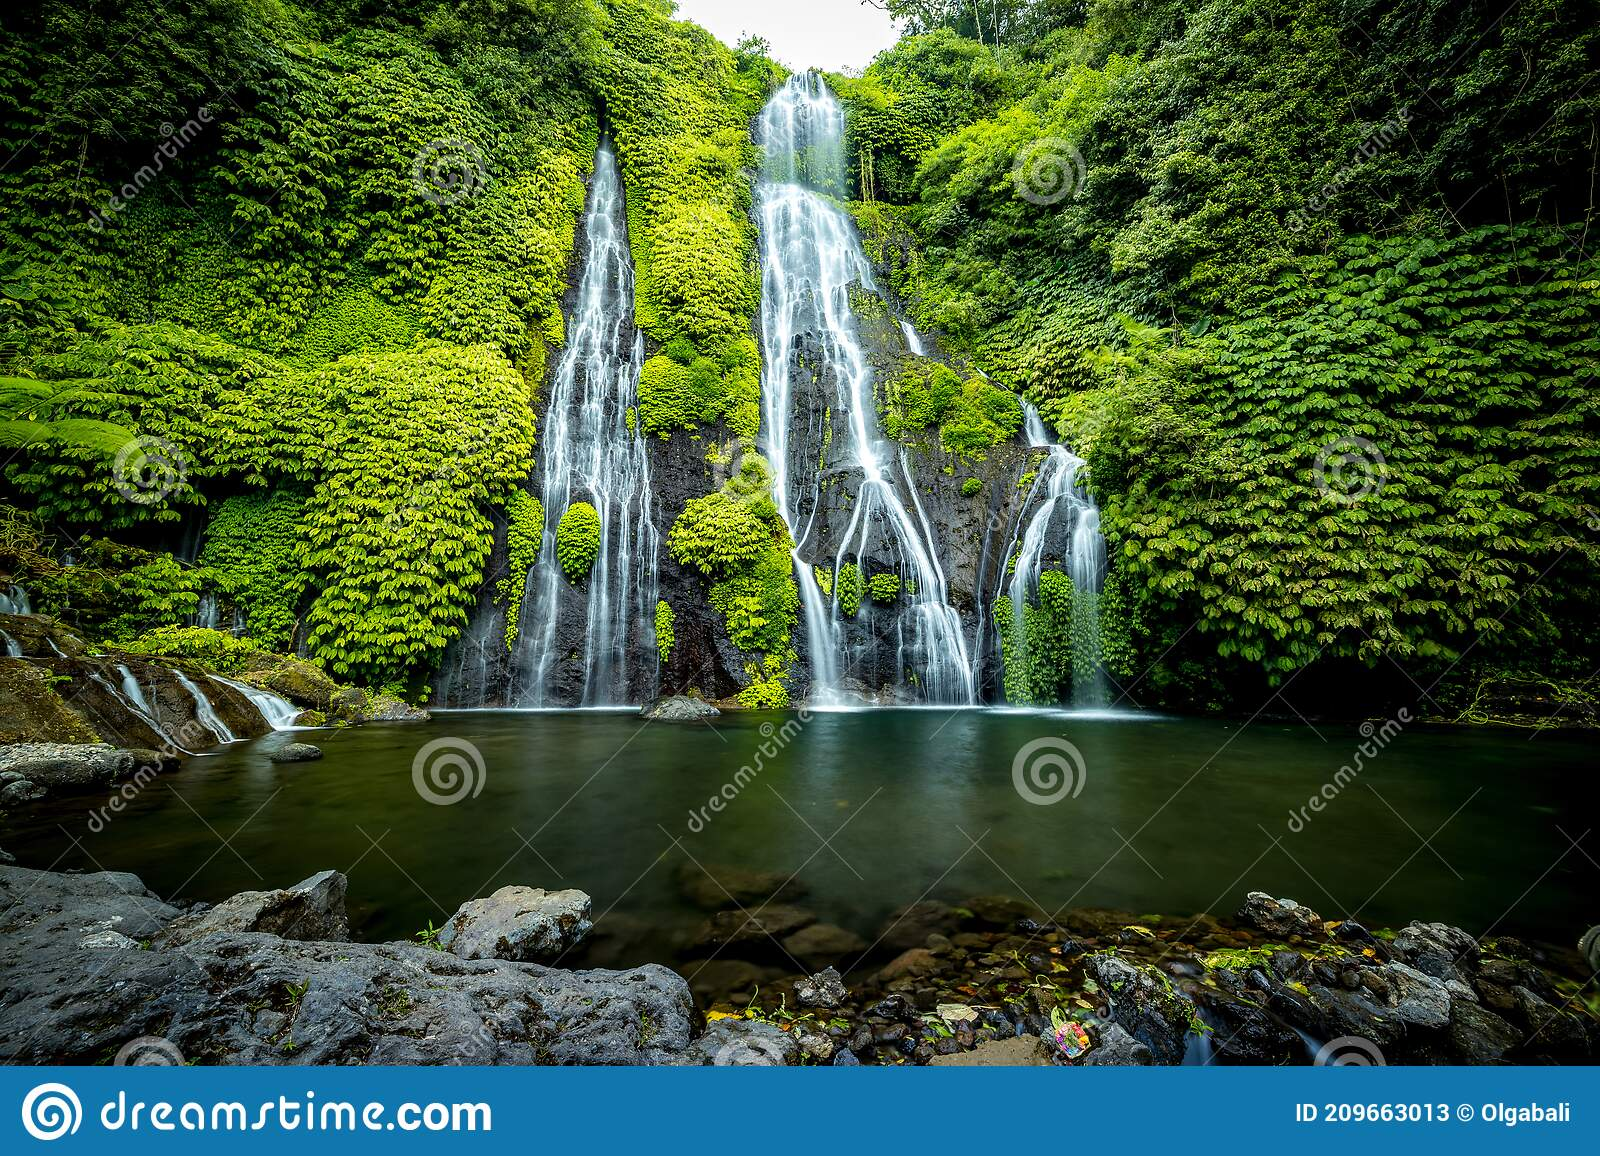 Waterfall Scenery Tropical Landscape Nature Background Adventure And Travel Concept Natural Environment Slow Shutter Speed Stock Image Image Of Freshness Amazing 209663013